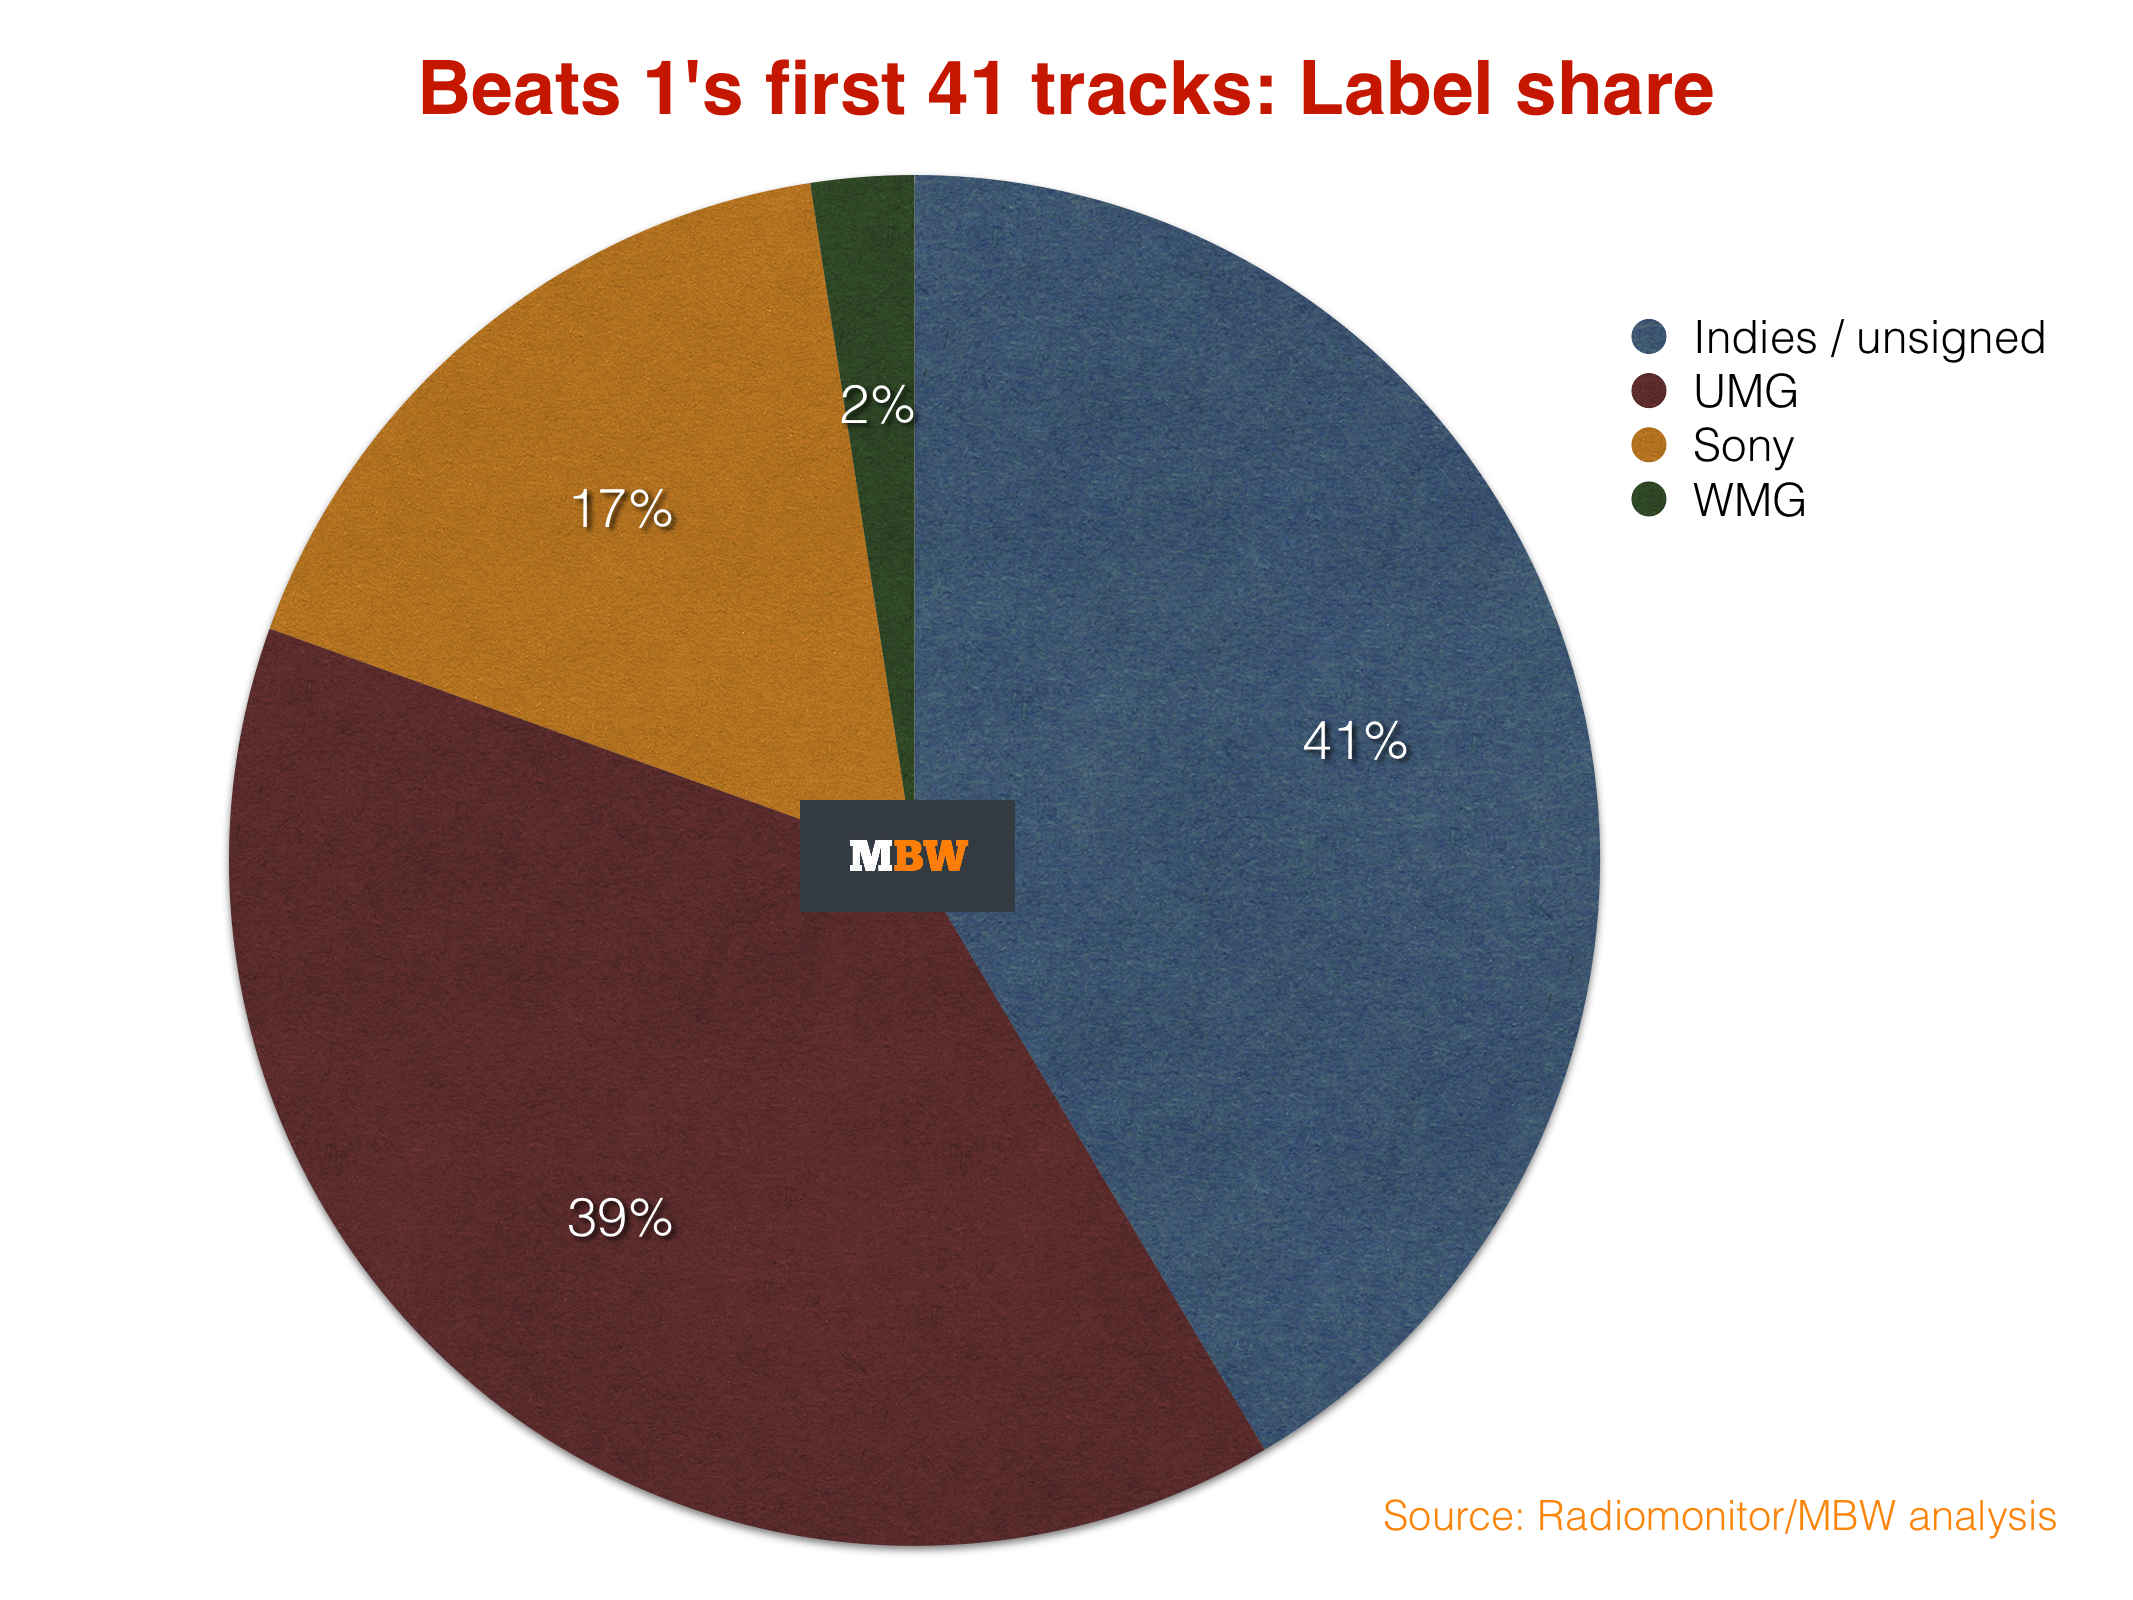 Major labels dominated the first day of Beats 1 programming